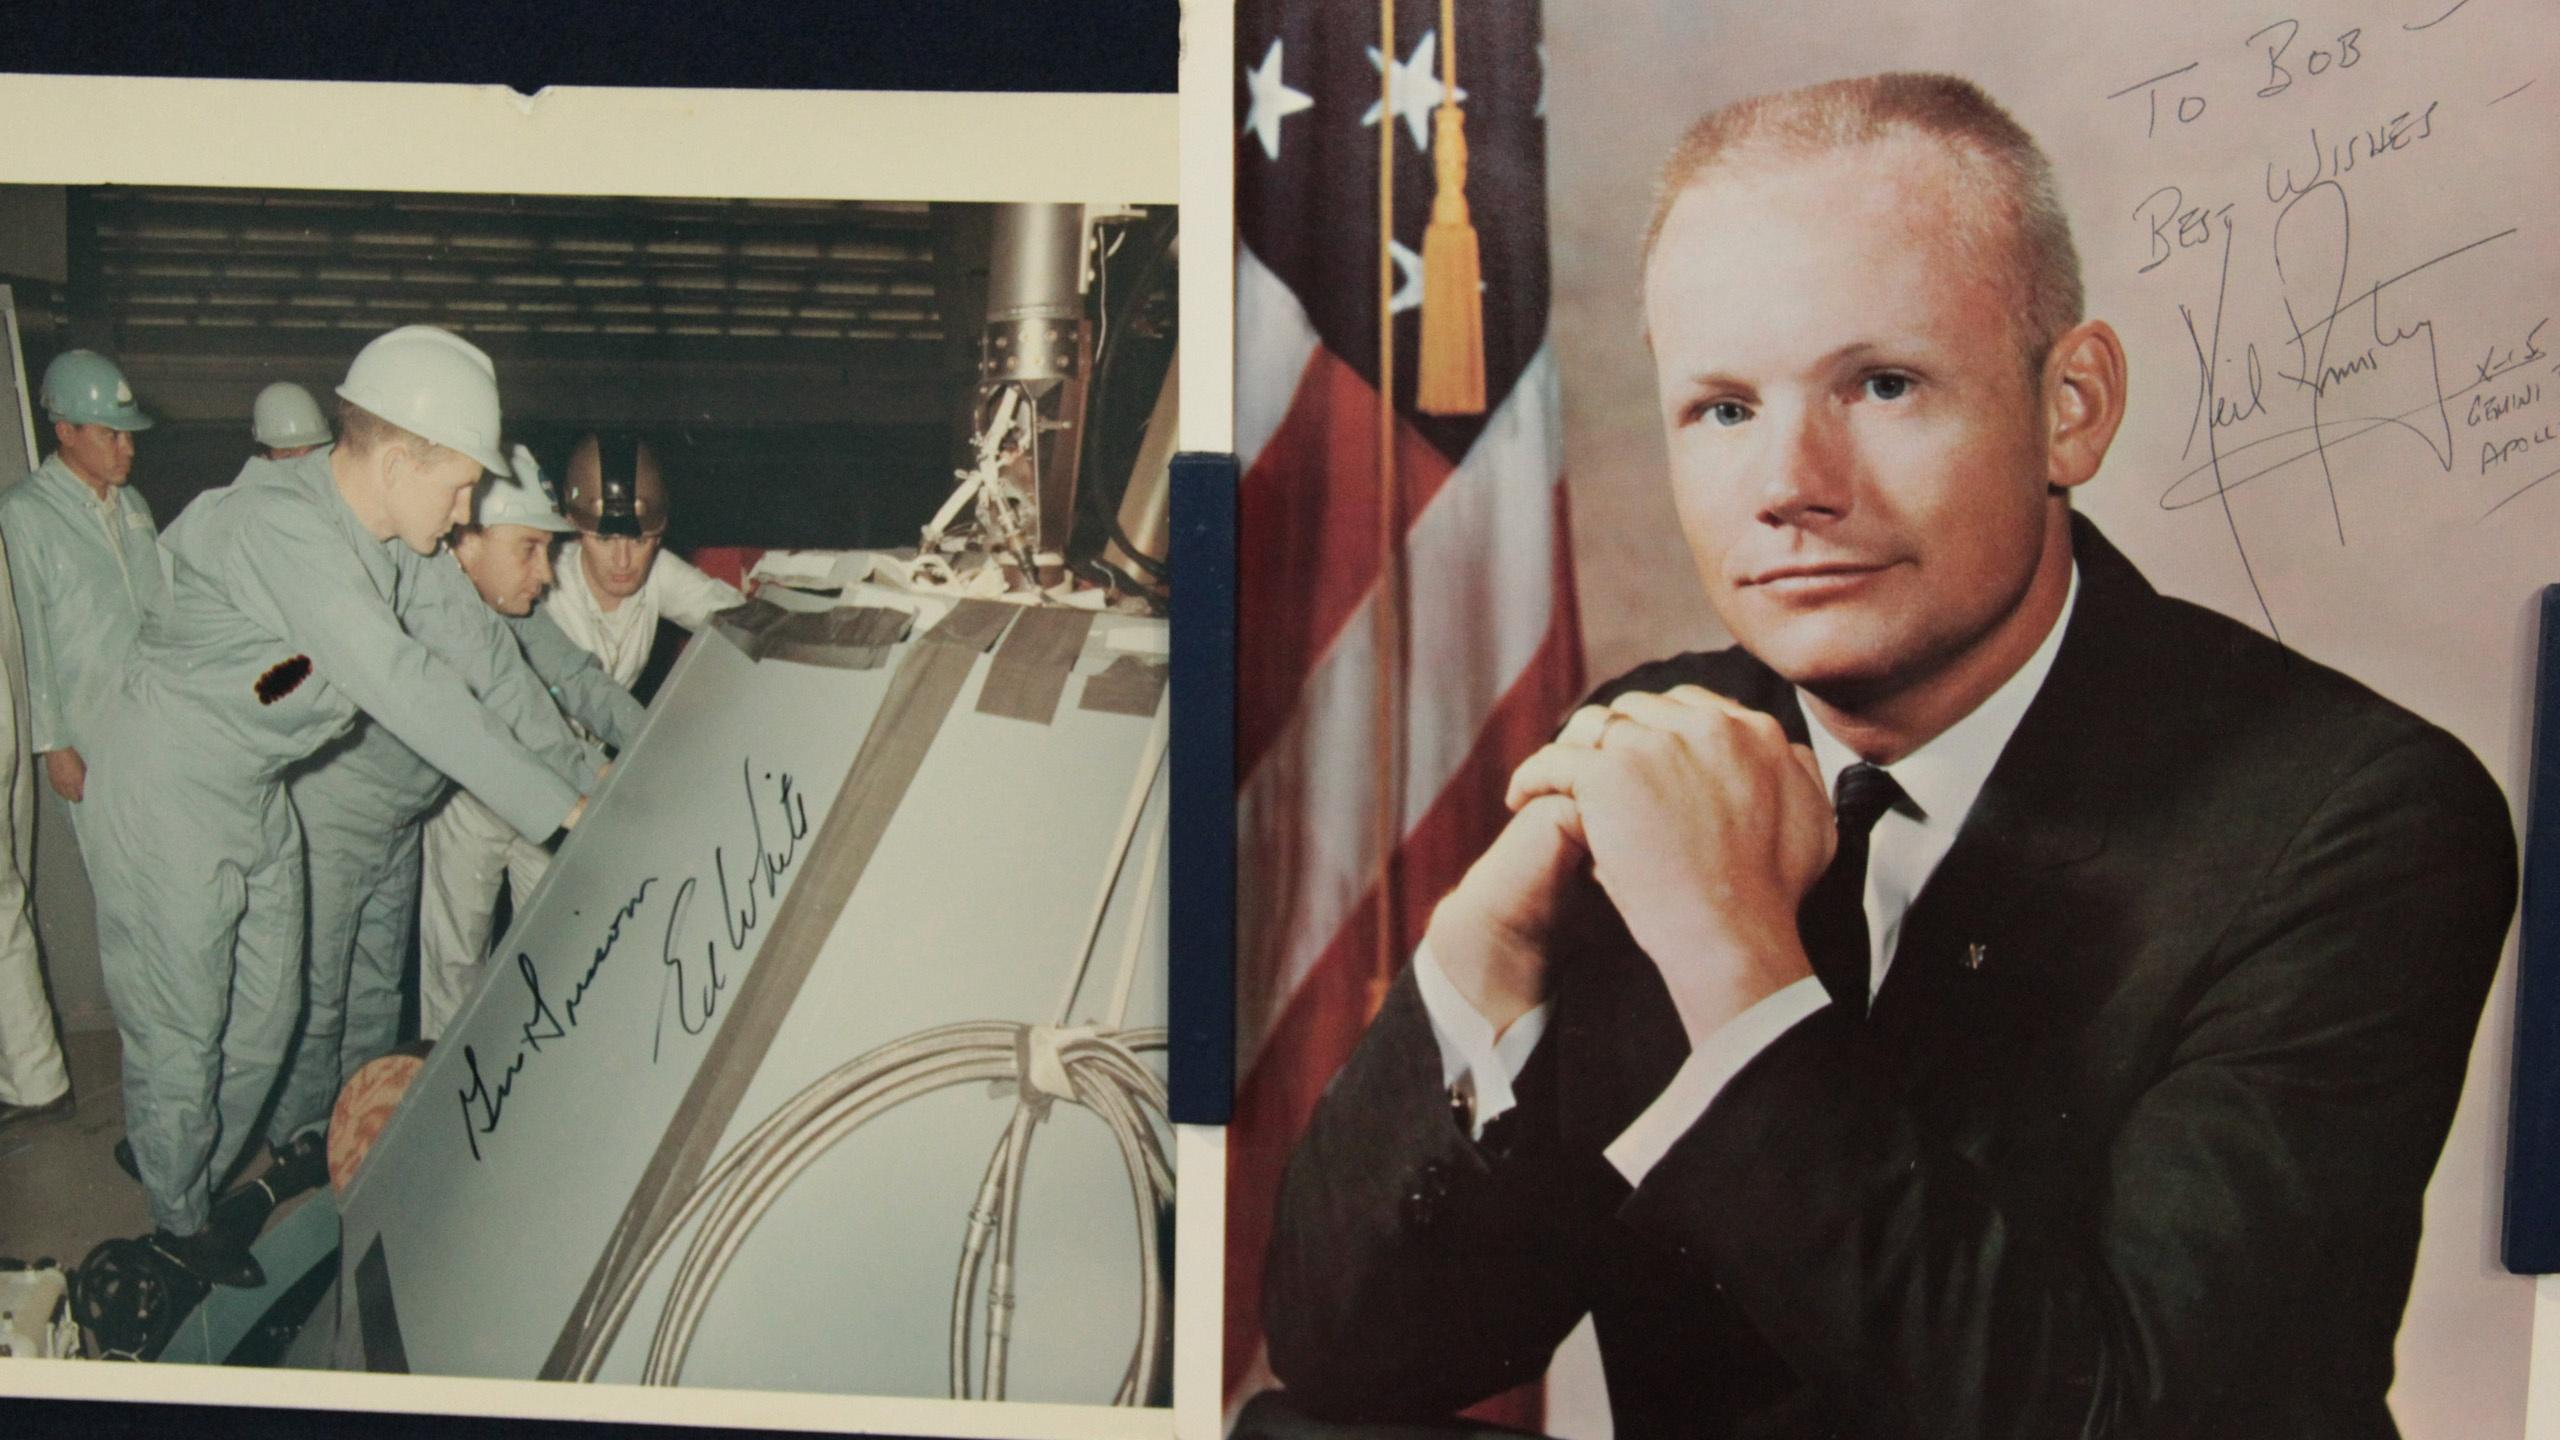 Bonus Appraisal: Signed NASA Photos, ca. 1965